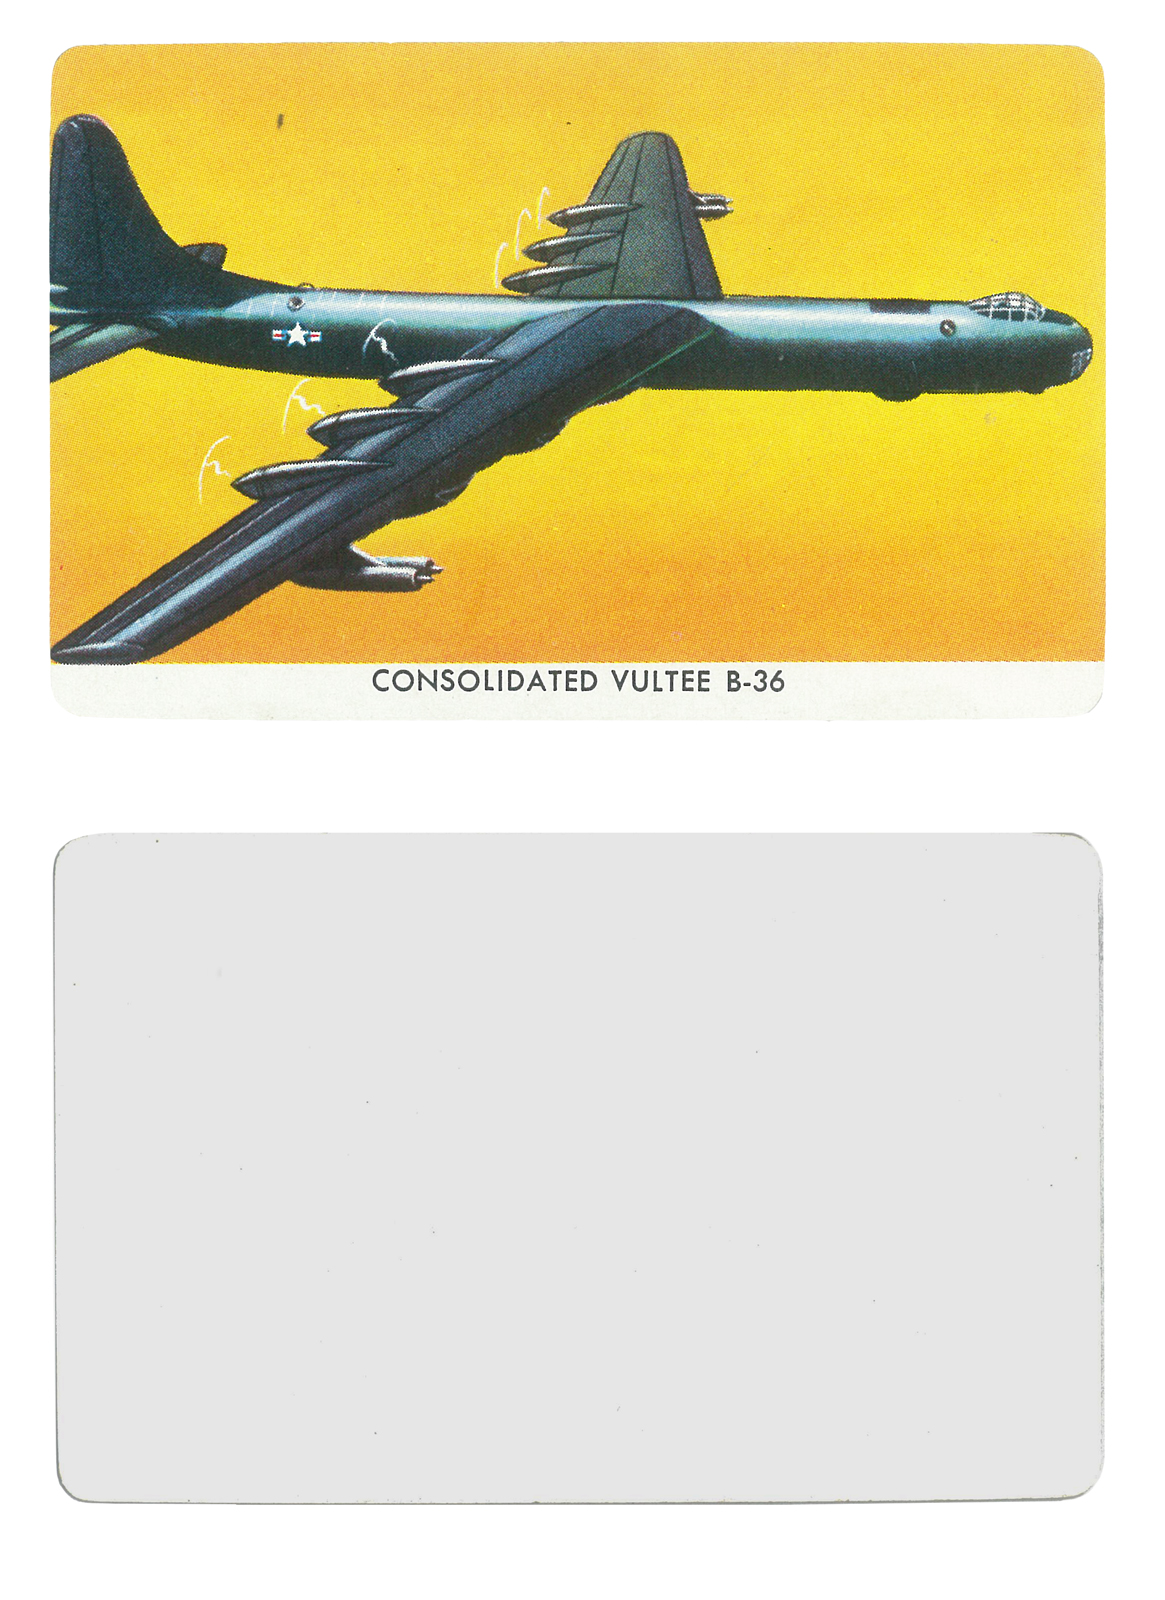 Consolidated Vultee B-36  Series: Quaker Pack-O-Ten Warplane Cards Manufacture: Quaker Oats Company Card Dimensions: 3.5 x 2.25 inches USA -1957